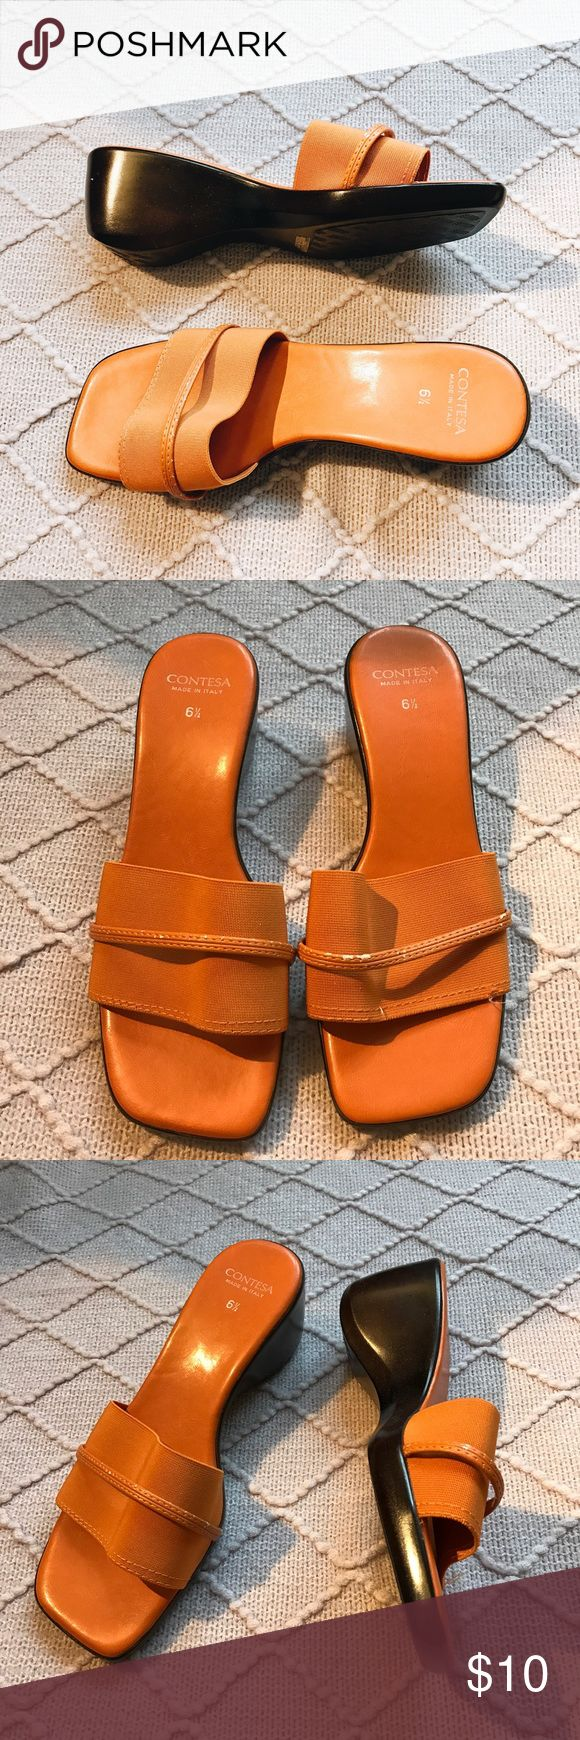 ✨vintage orange sandals✨ Great condition with some peeling as shown but could be fixed. Made in Italy. Beautiful especially for the summer ✨ Vintage Shoes Sandals